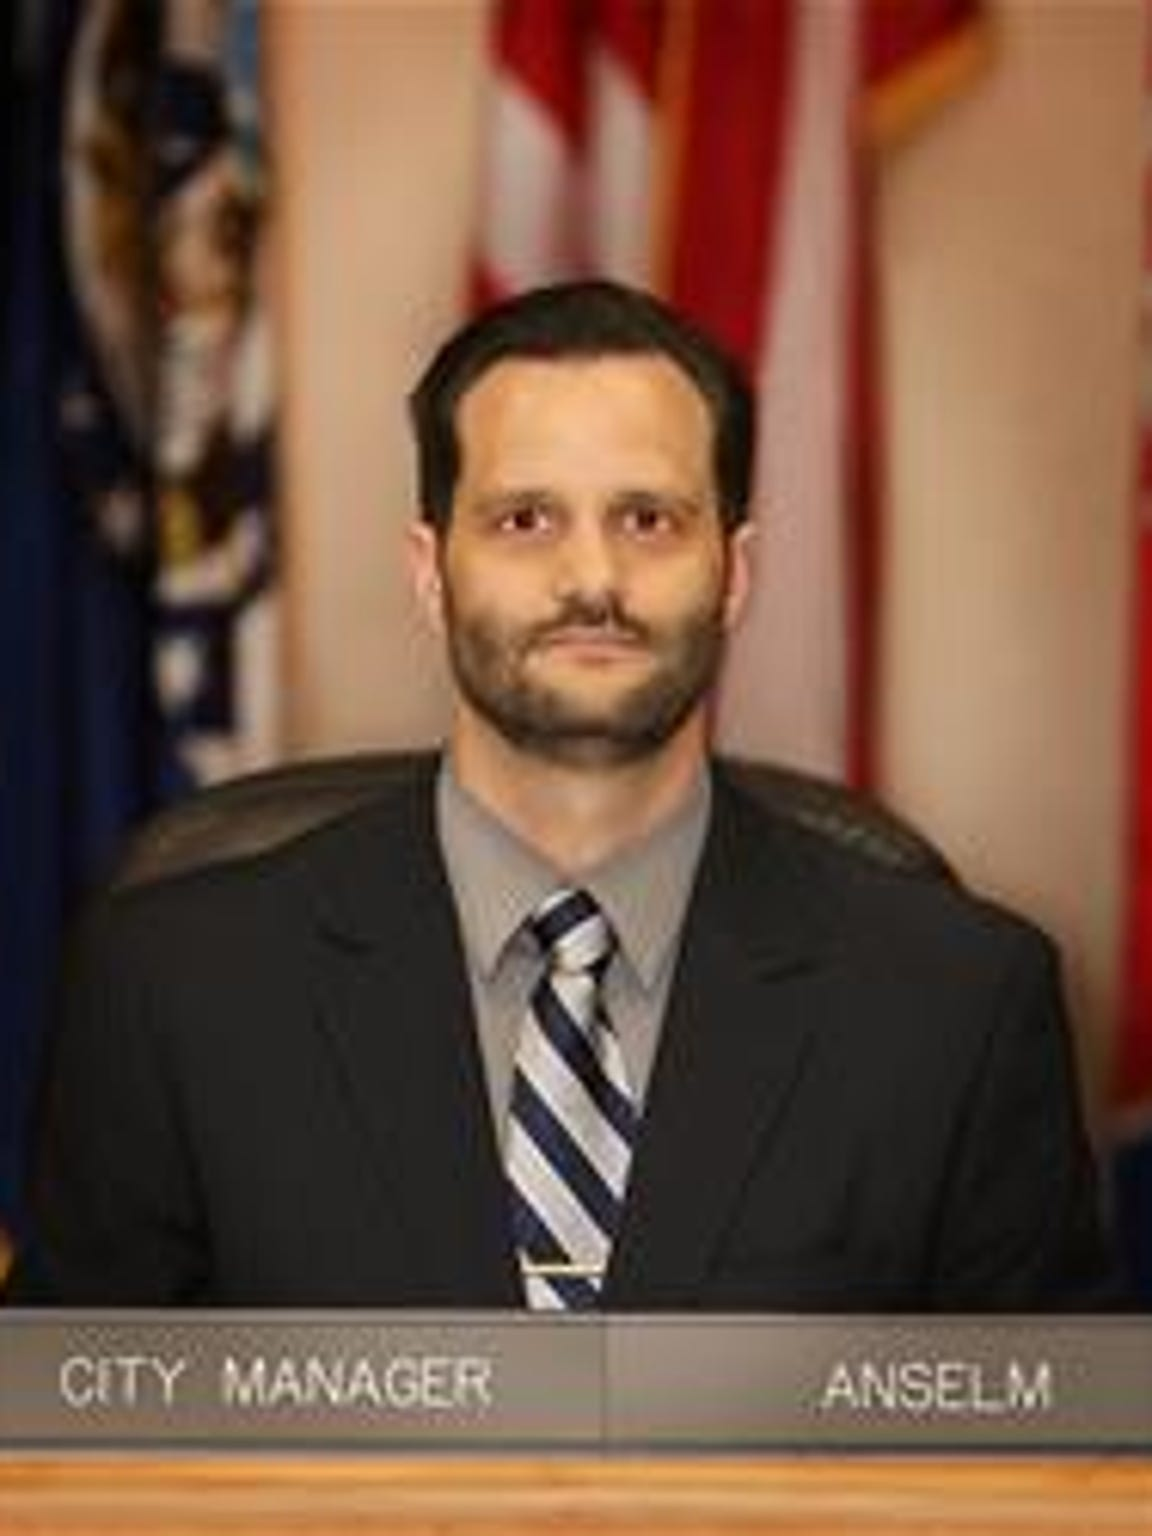 Joplin City Manager Sam Anselm